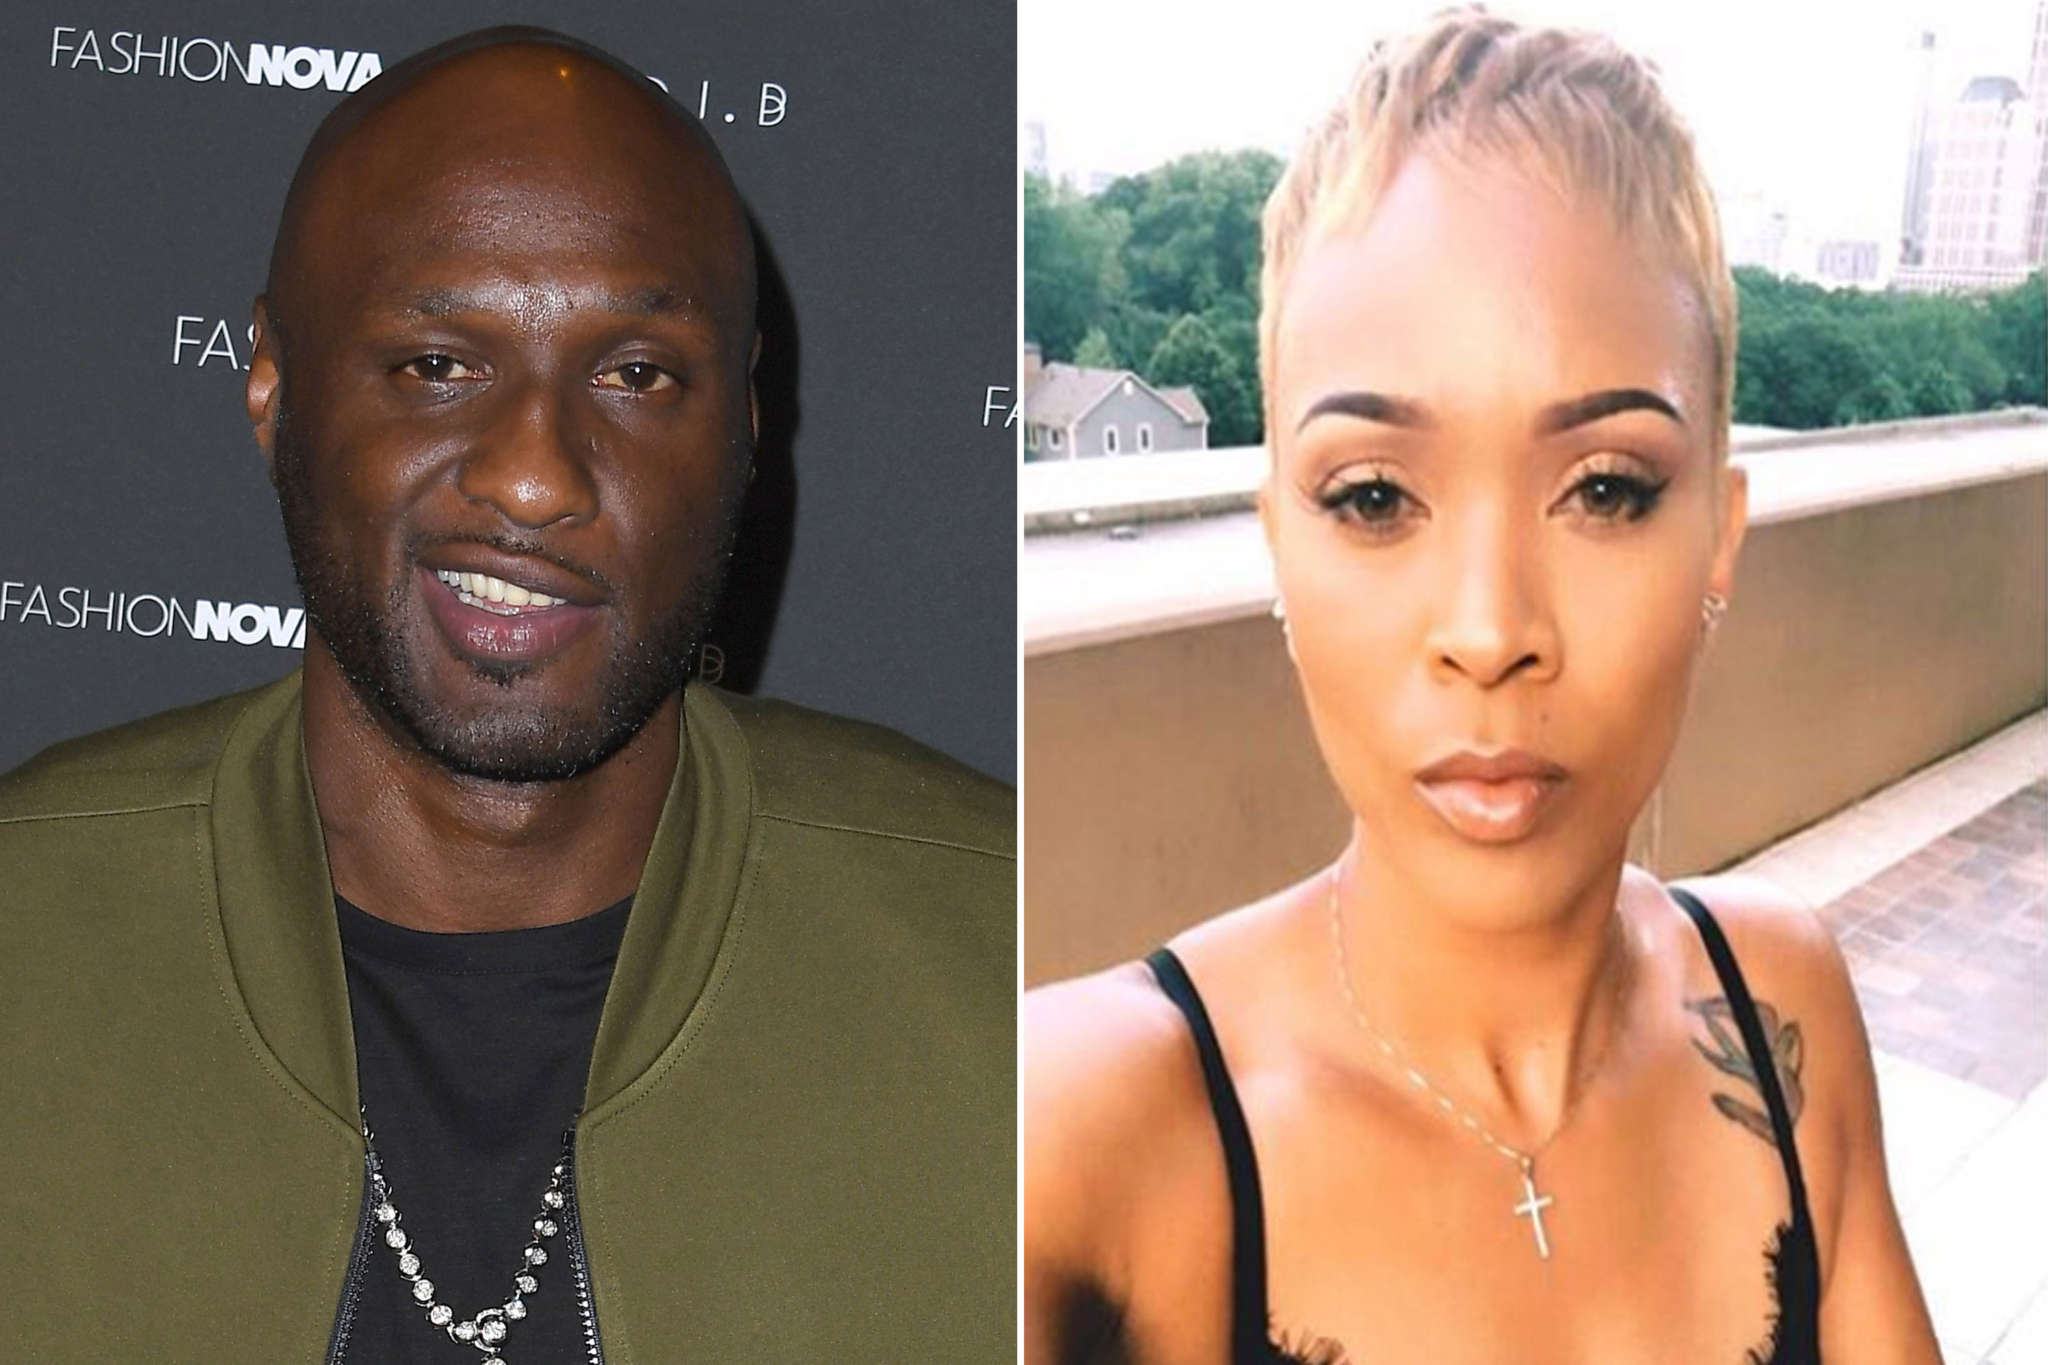 Lamar Odom Wears His Love For Sabrina Parr On His Skin — Gets Mixed Reviews